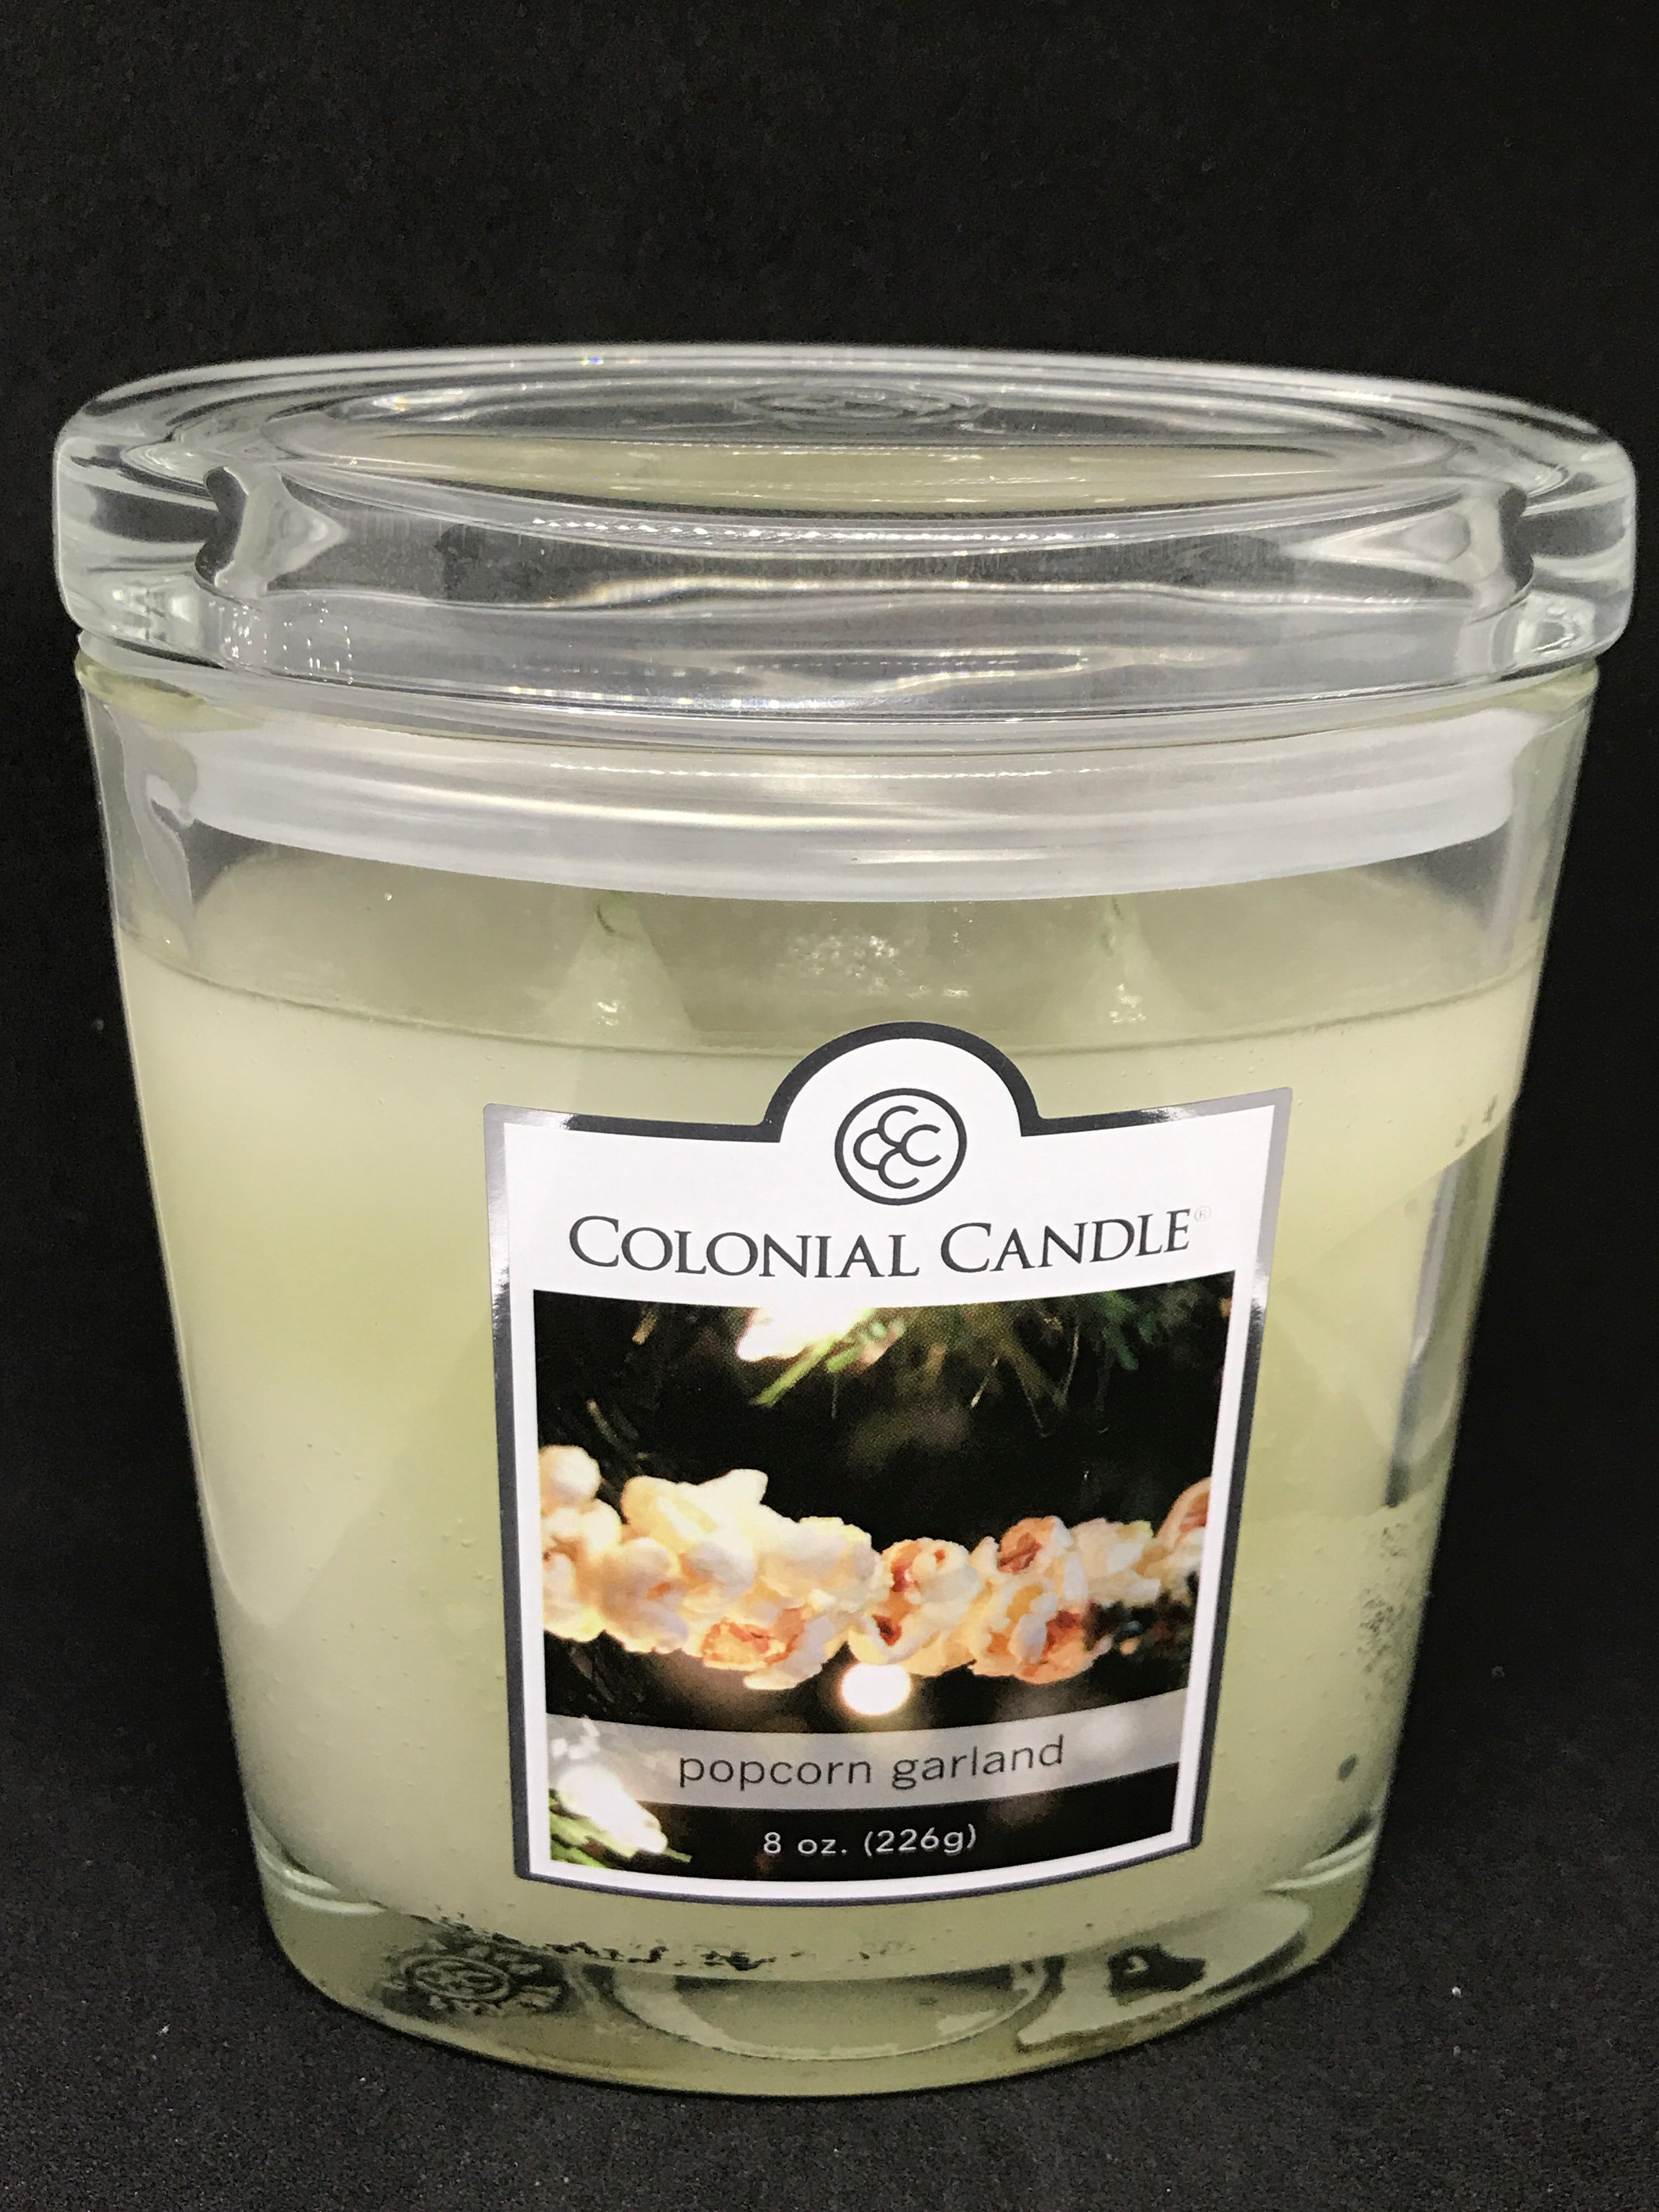 Popcorn garland jar Candle etc - Mountain View Candle Works